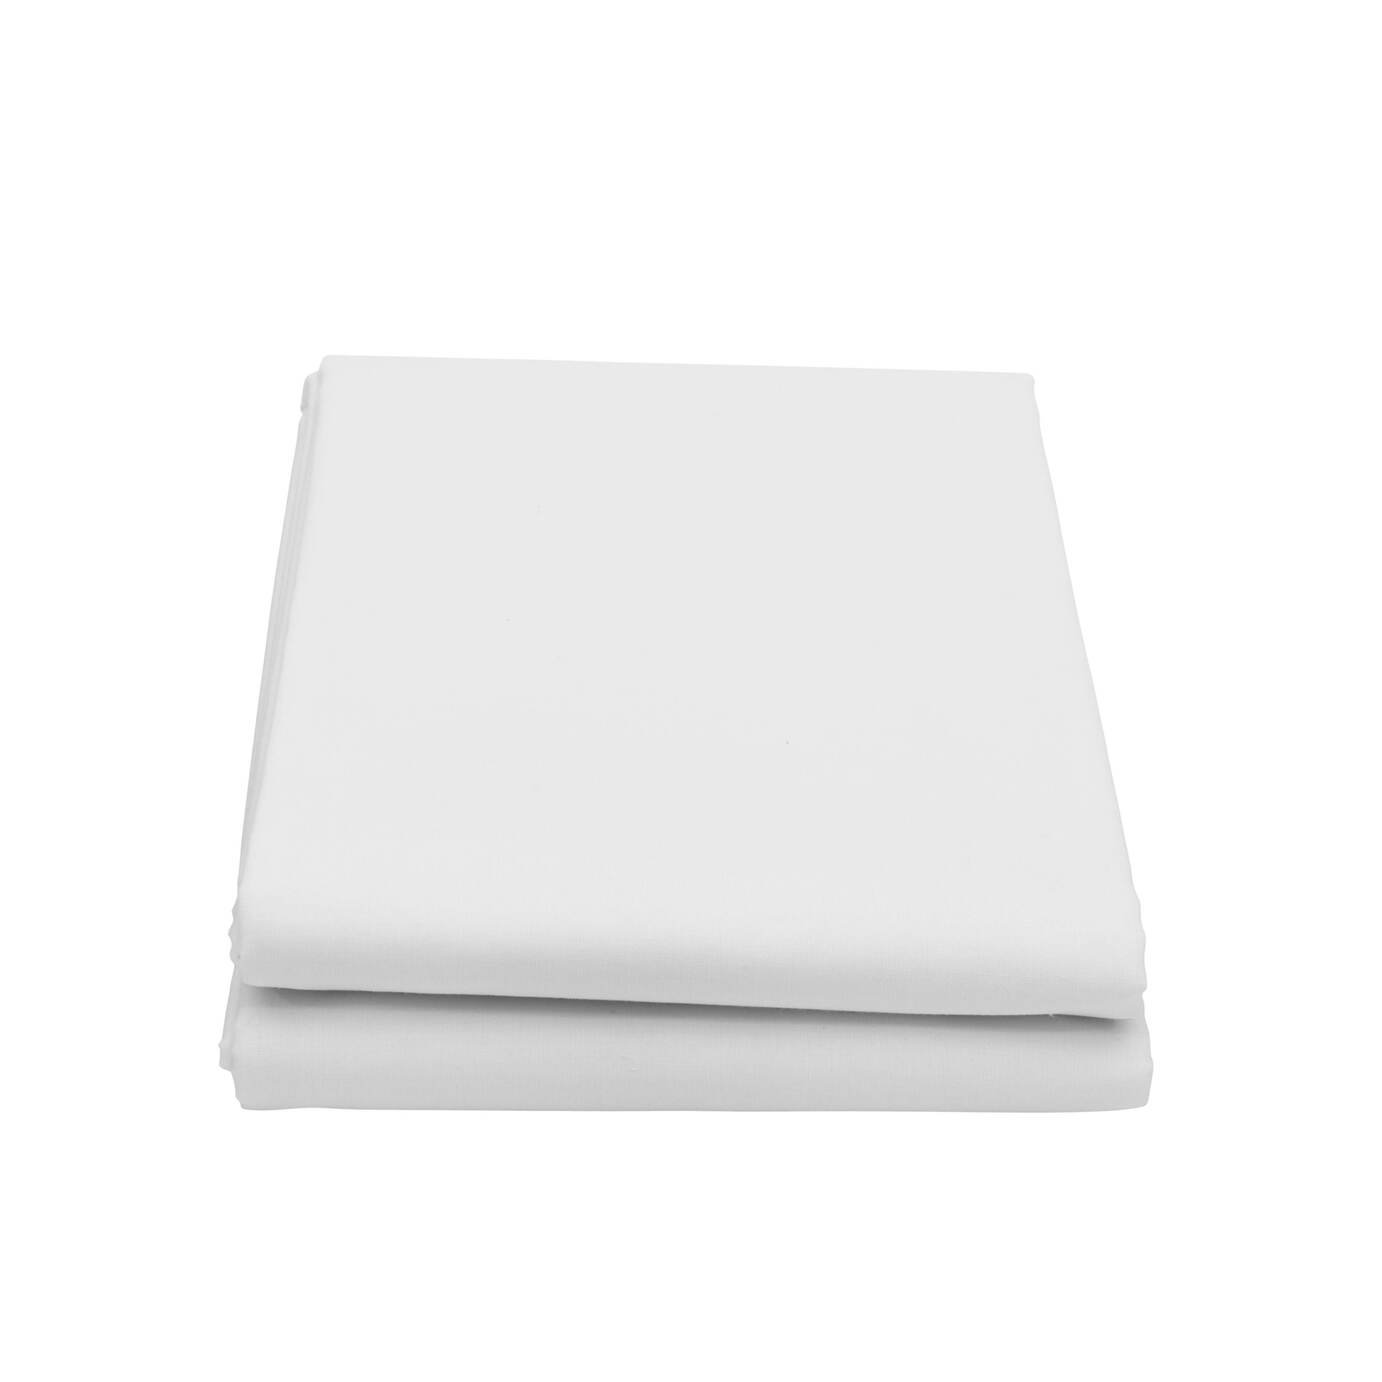 Yawn Air Bed Fitted Sheet - Single